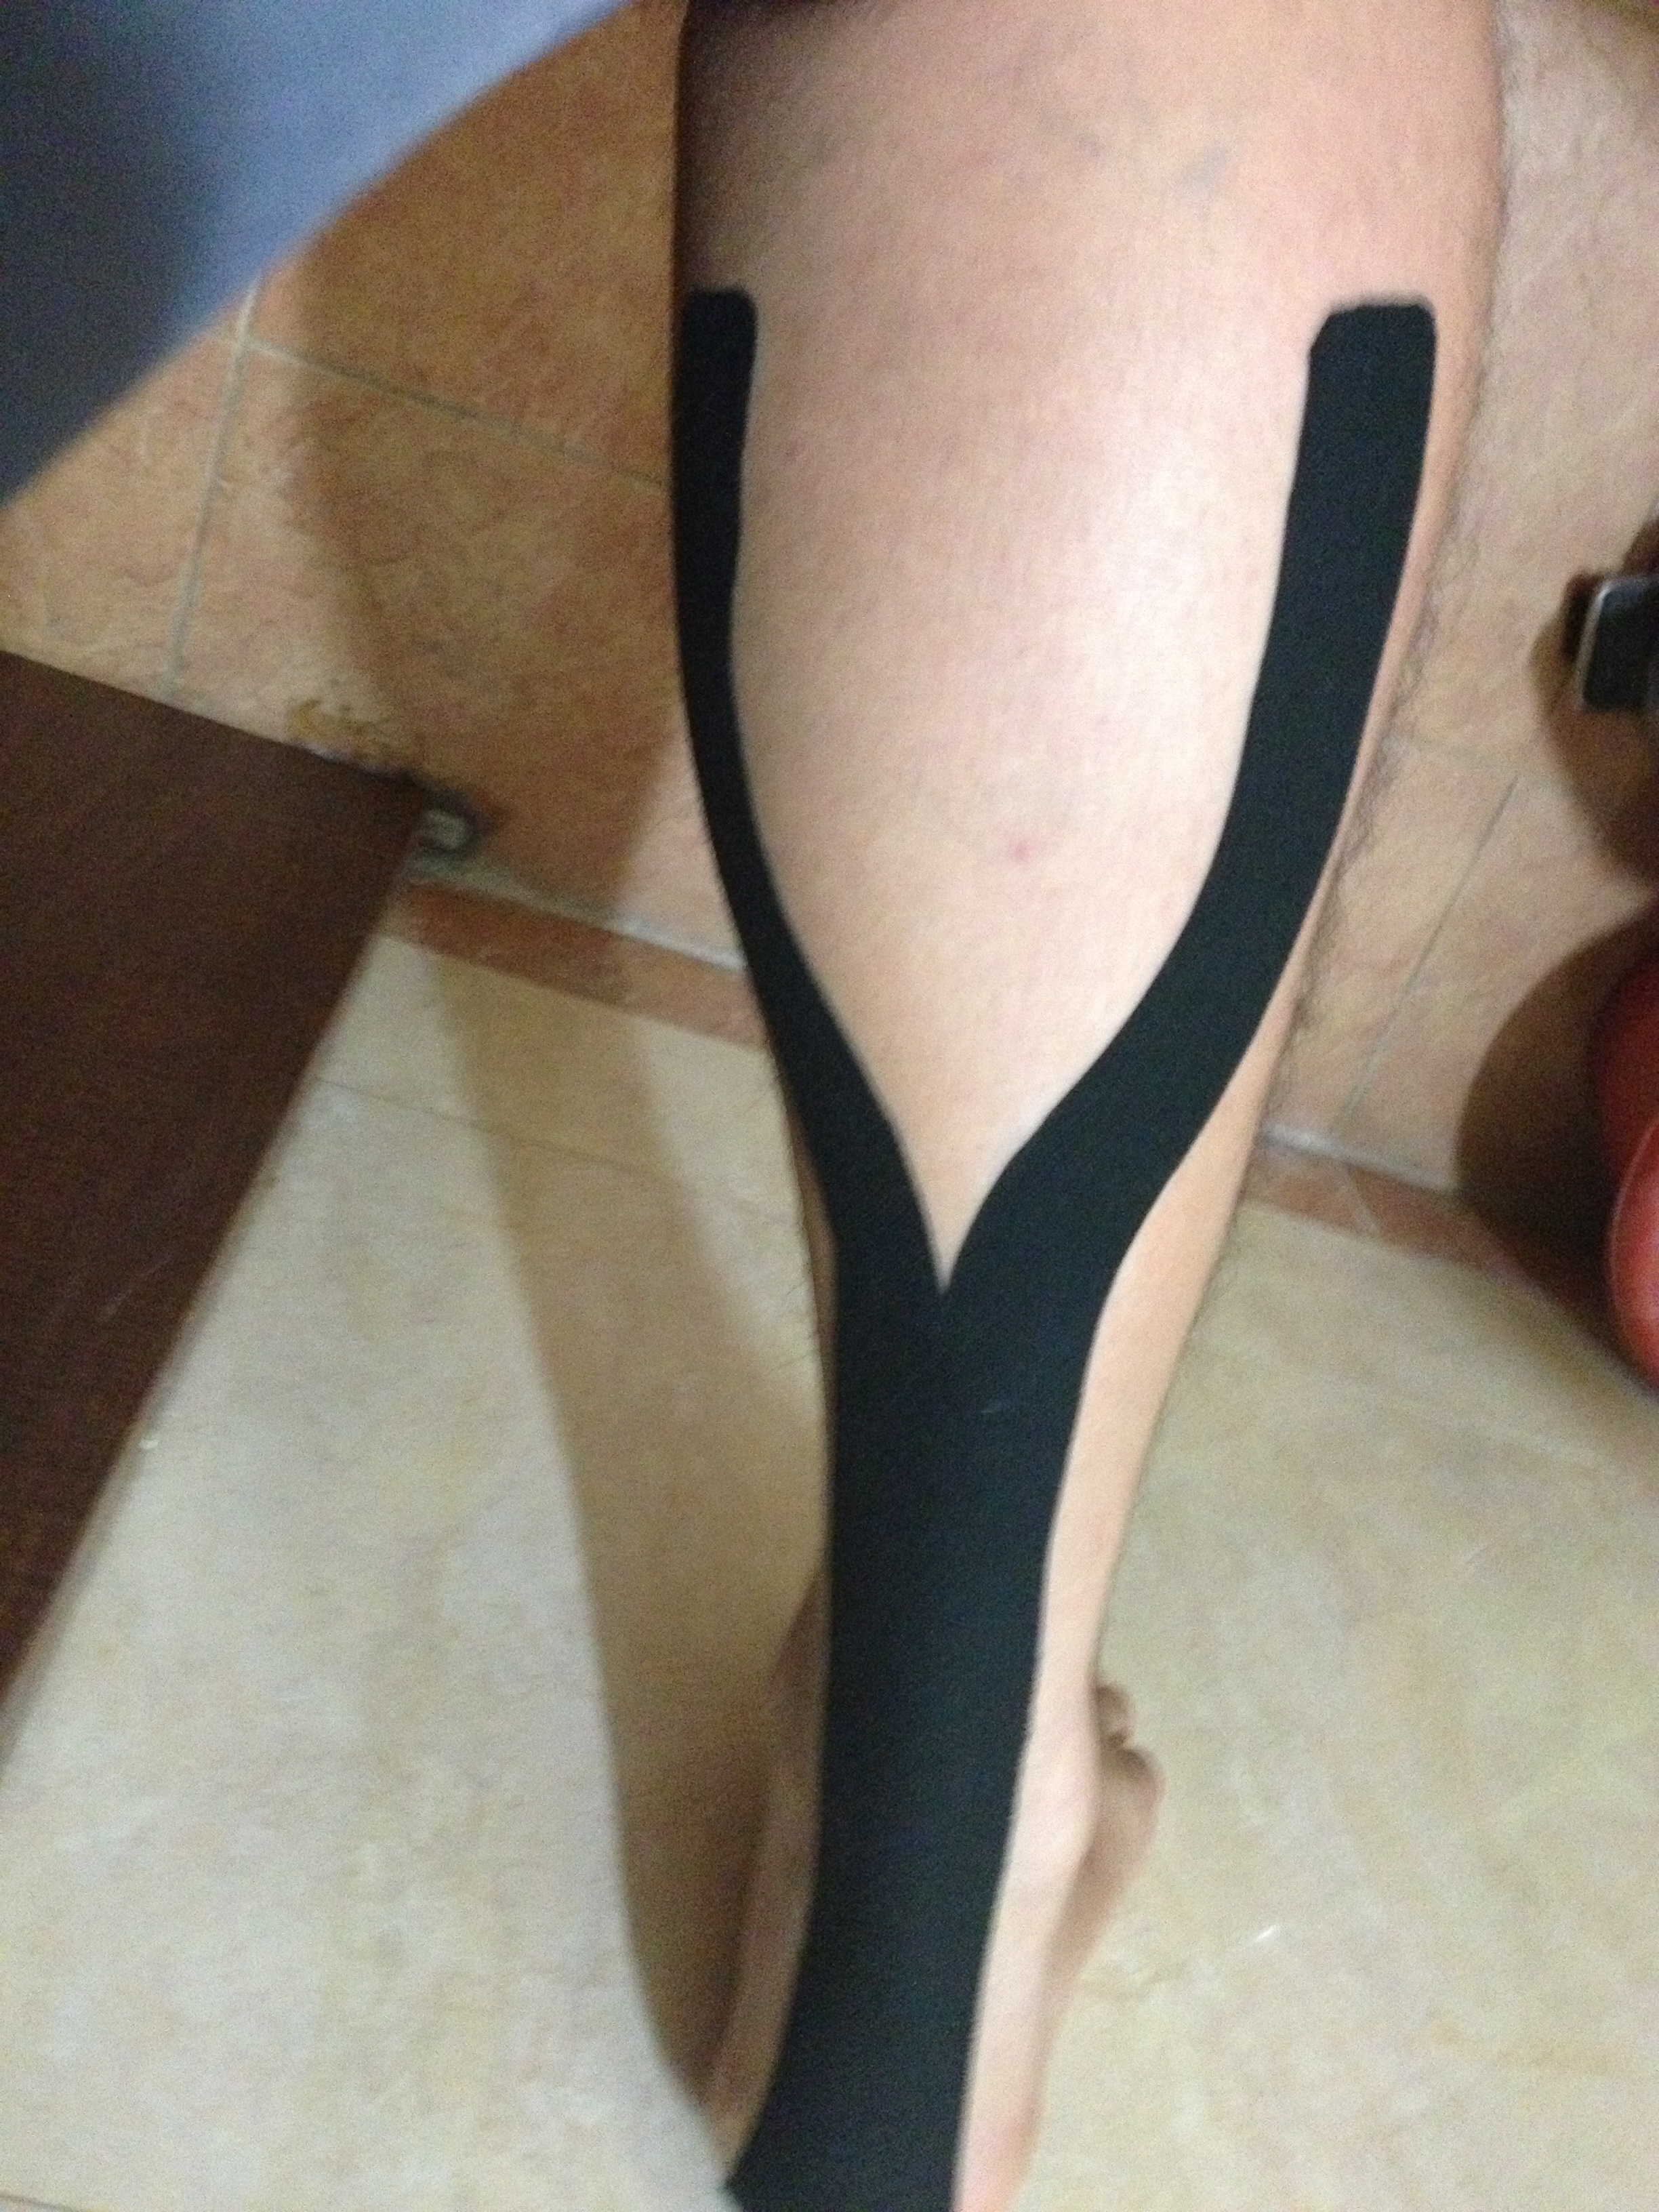 image source:https://commons.wikimedia.org/wiki/File:Kinesio_Taping_for_Soleus_and_Achilles_tendon.jpg